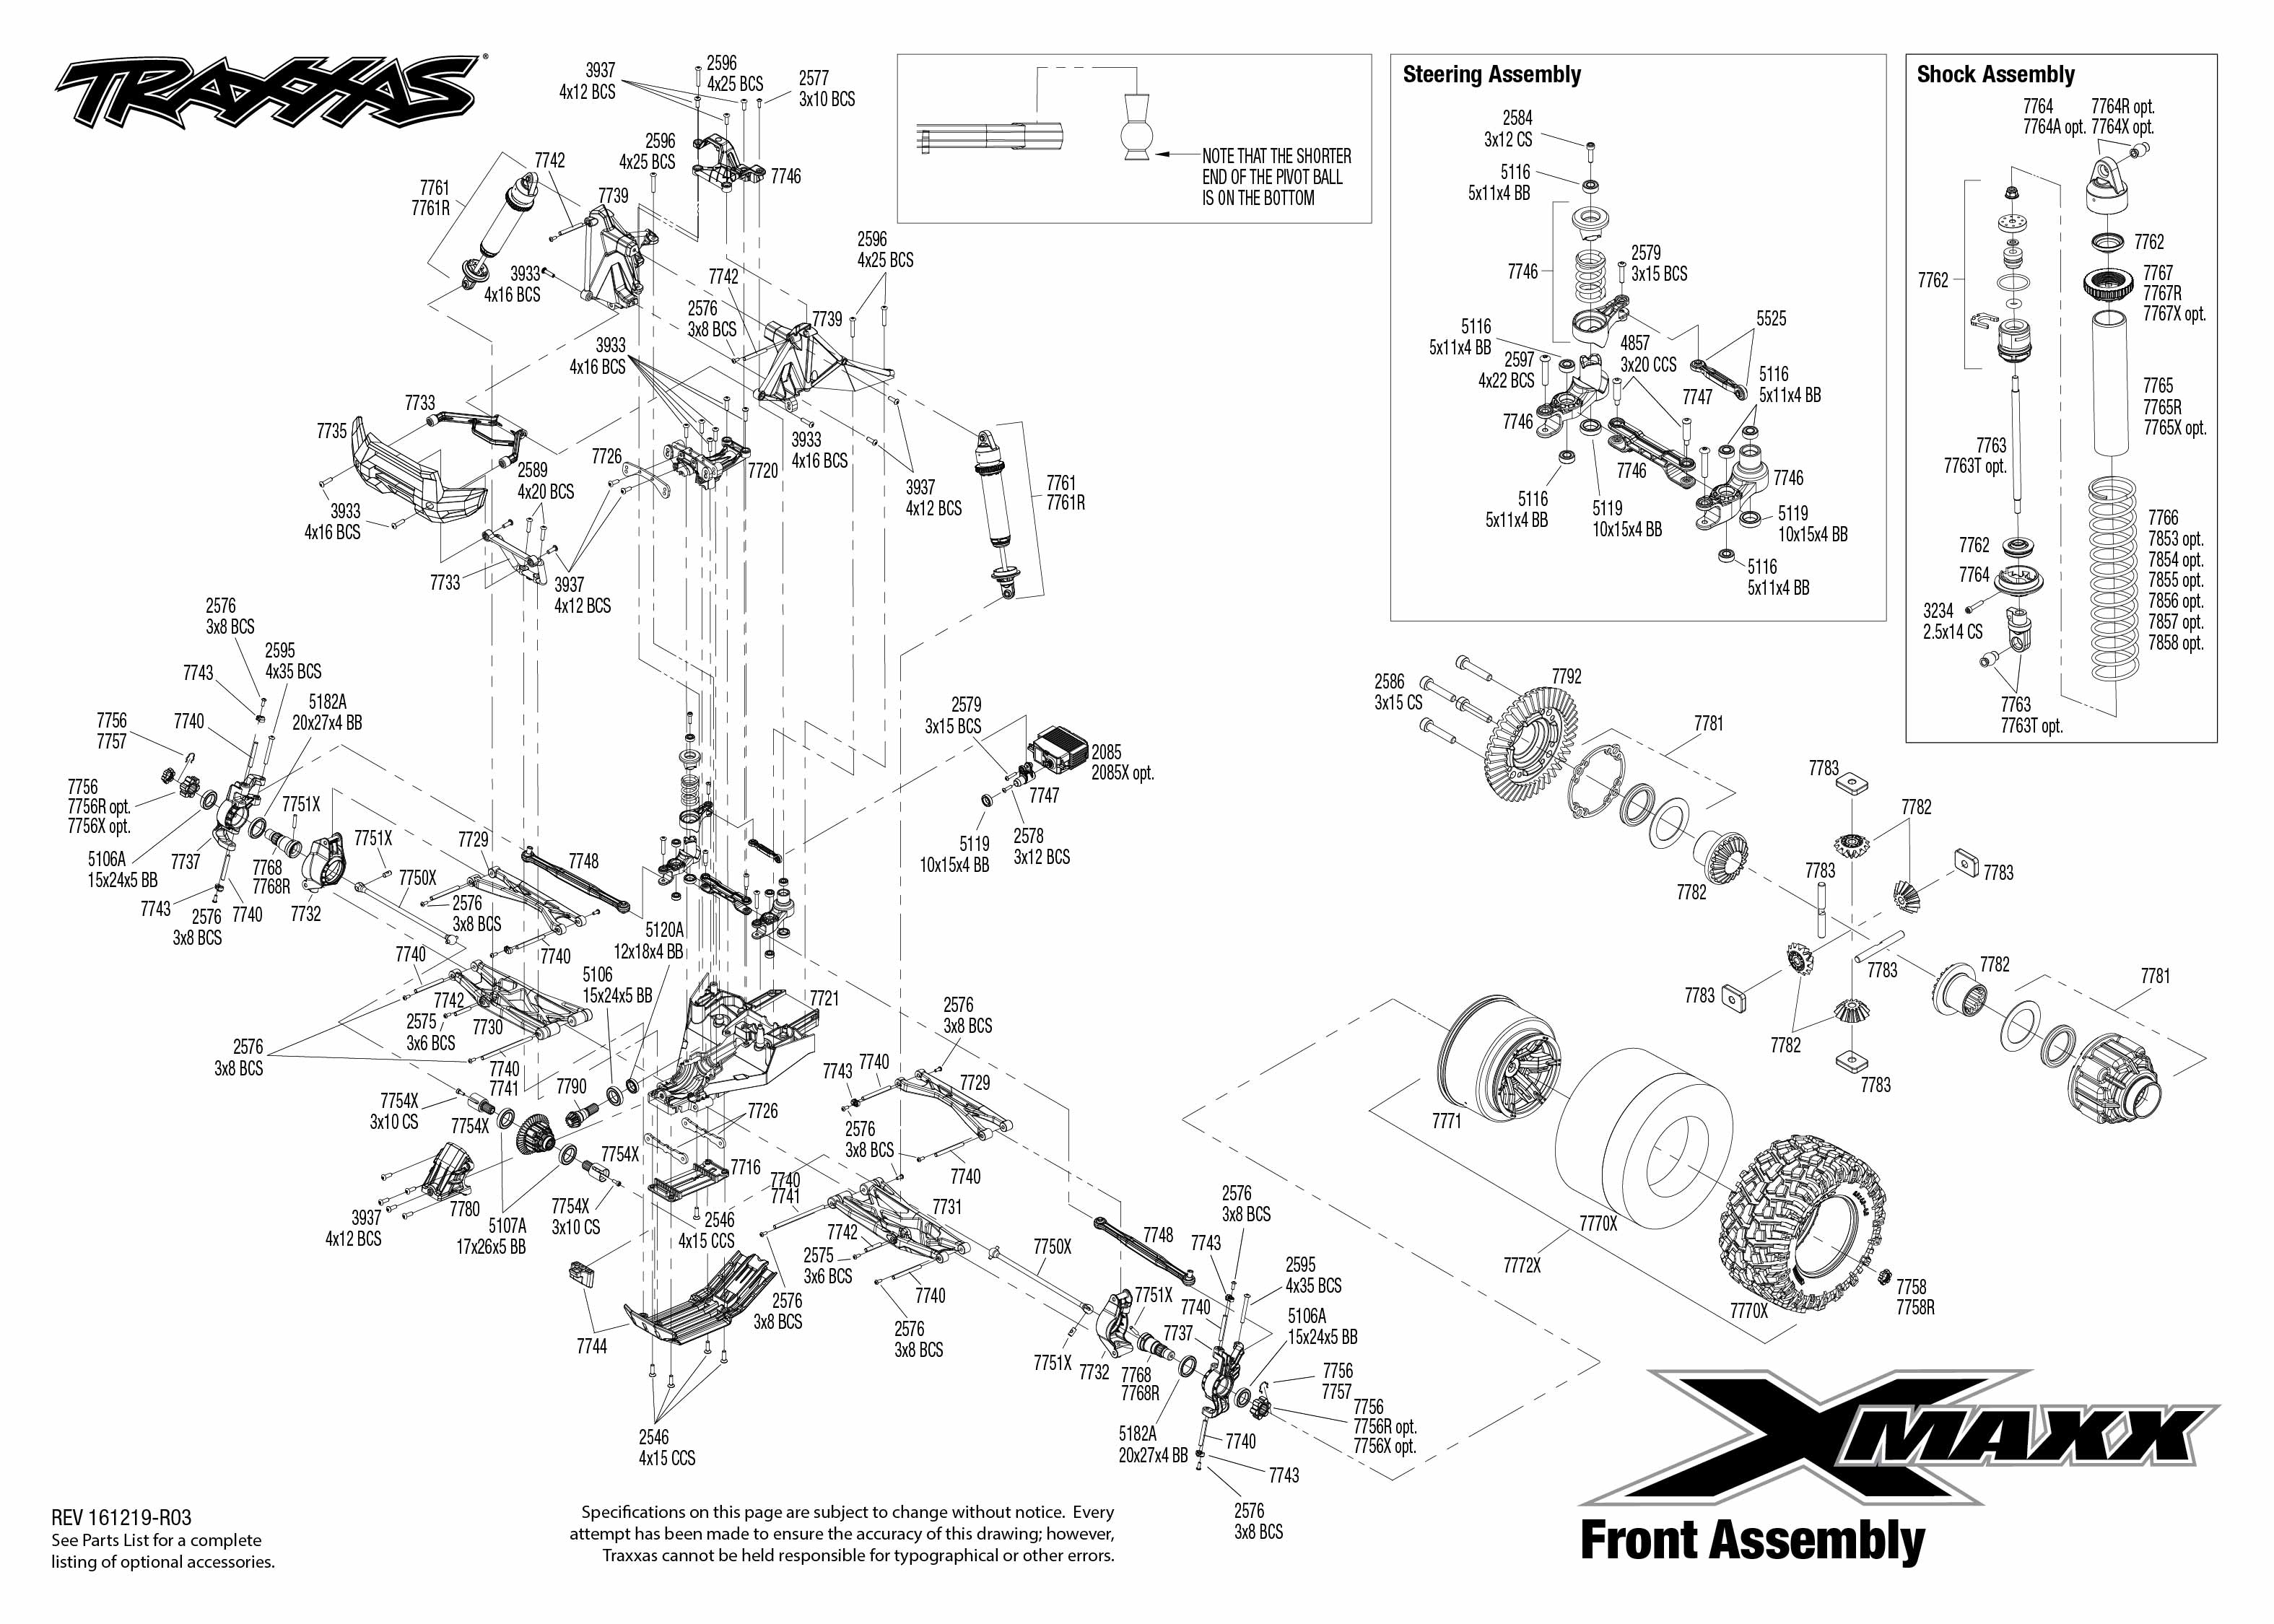 exploded view  traxxas x-maxx 1 5 8s 4wd tqi brushless tsm rtr